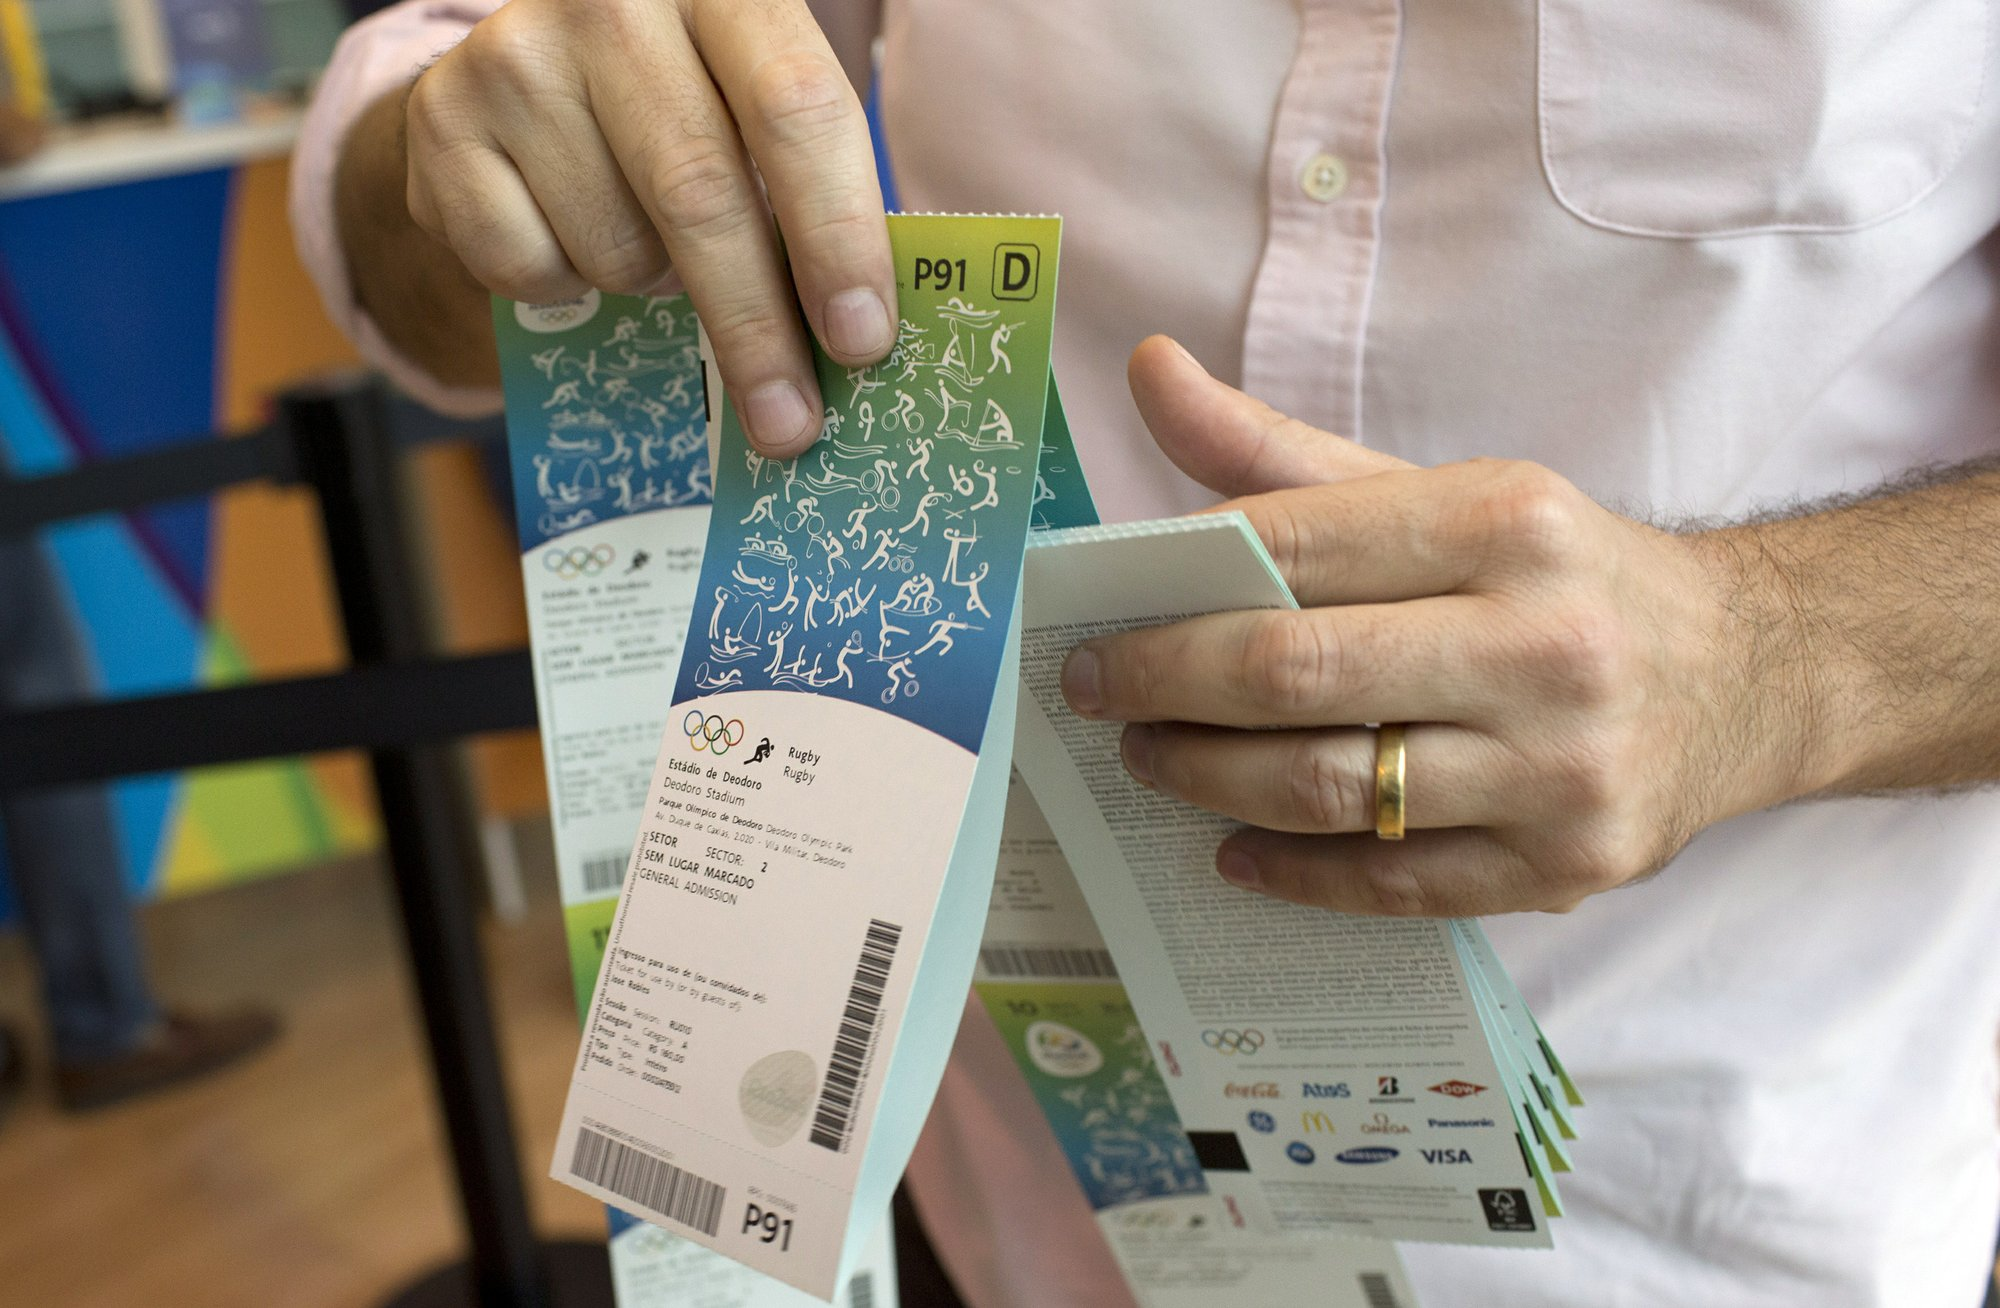 Scramble for Olympic tickets in Japan; rest of world waits